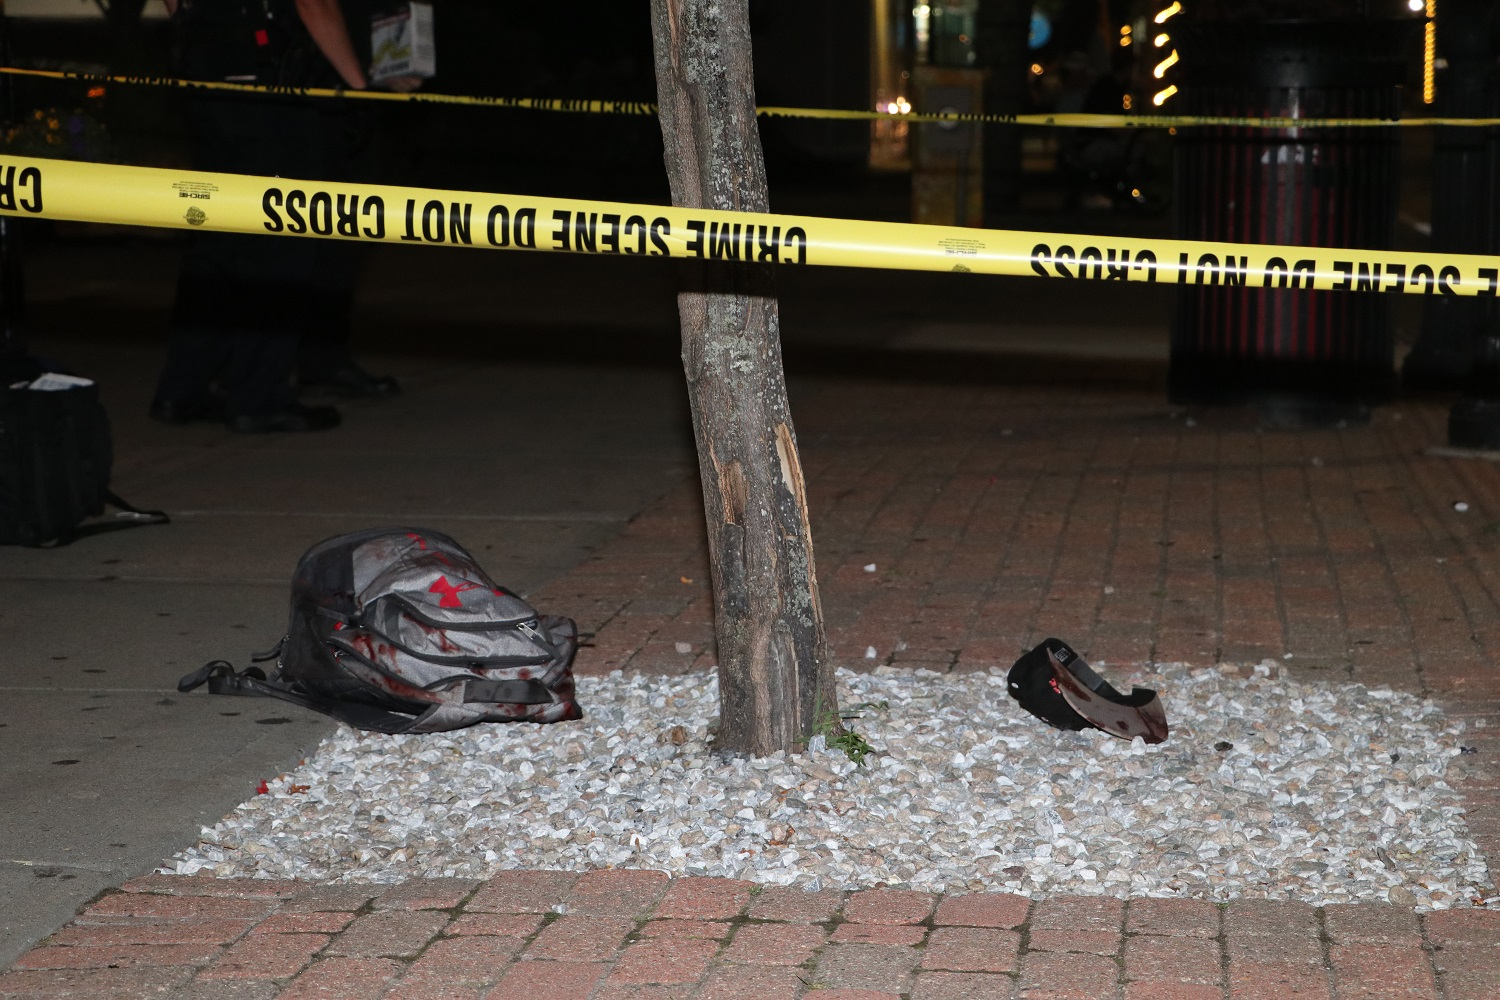 DEVELOPING: Bloody male collapsed in front of Hyannis cafe